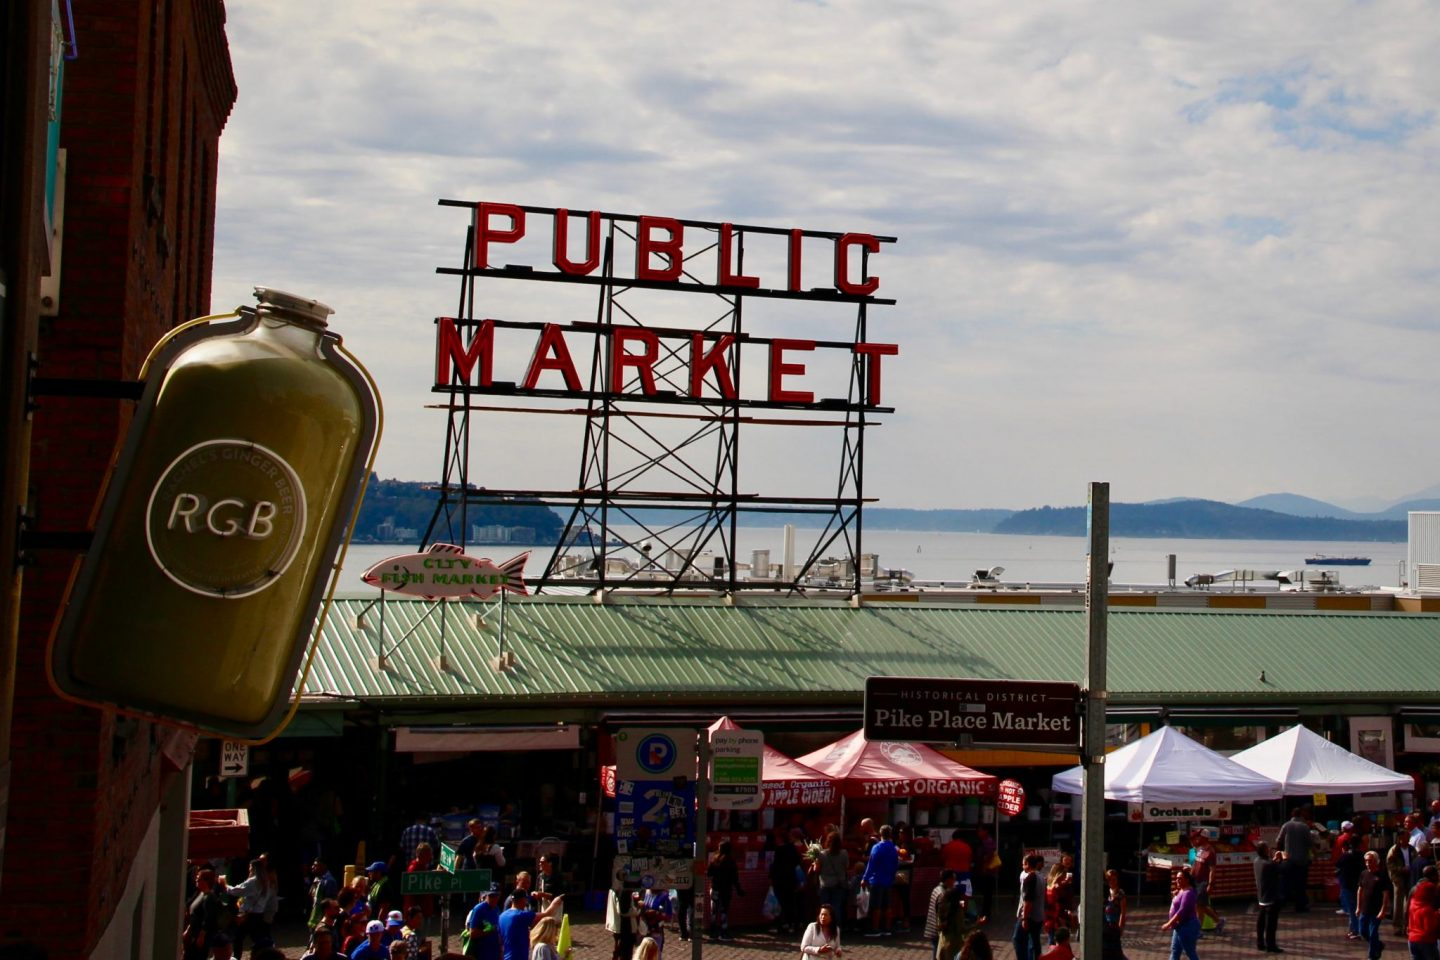 Pike Place Public Market Seattle, Washington - The Spectacular Adventurer